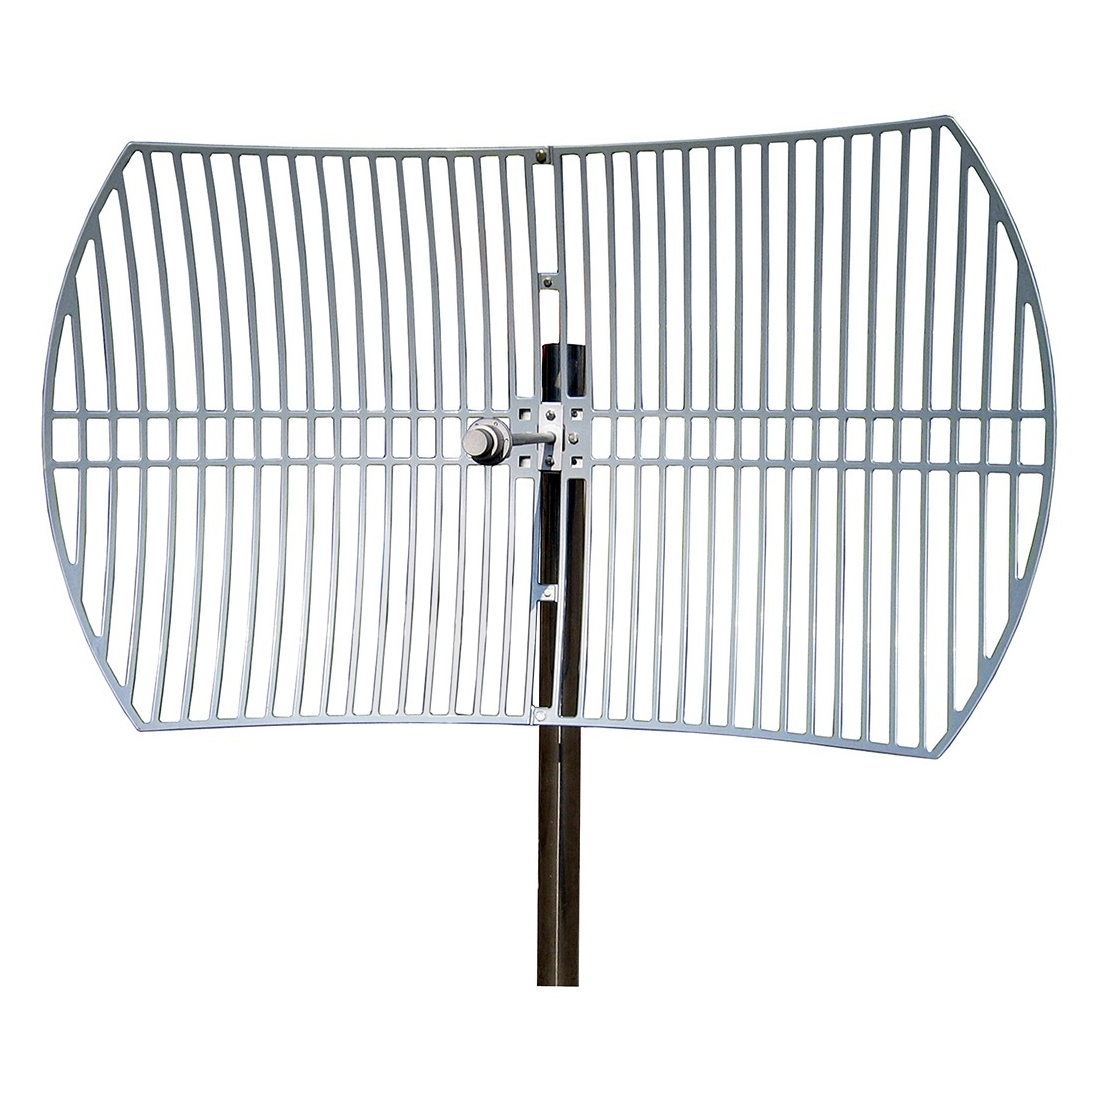 TP-LINK TL-ANT5830B 5GHz 30dBi Outdoor Directional Grid Parabolic Antenna